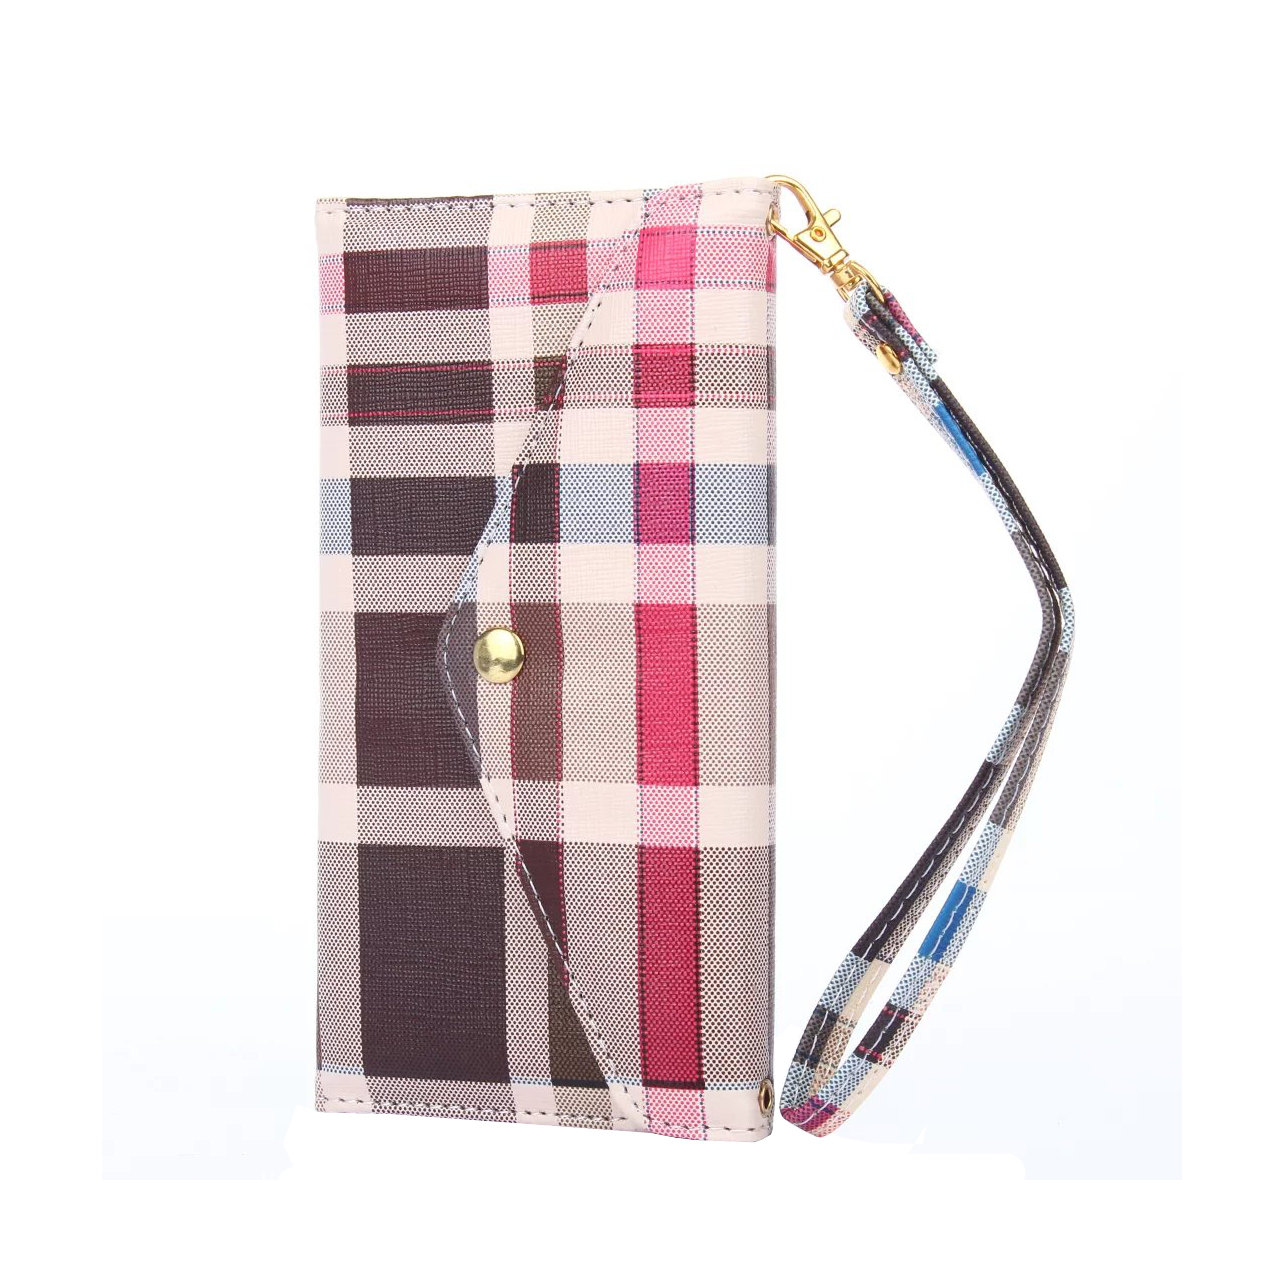 different iphone 6 cases cases for iphone 6 fashion iphone6 case iphones and cases new features for iphone 6 cheap designer phone cases iphoe cases price for iphone 6 next phone from apple